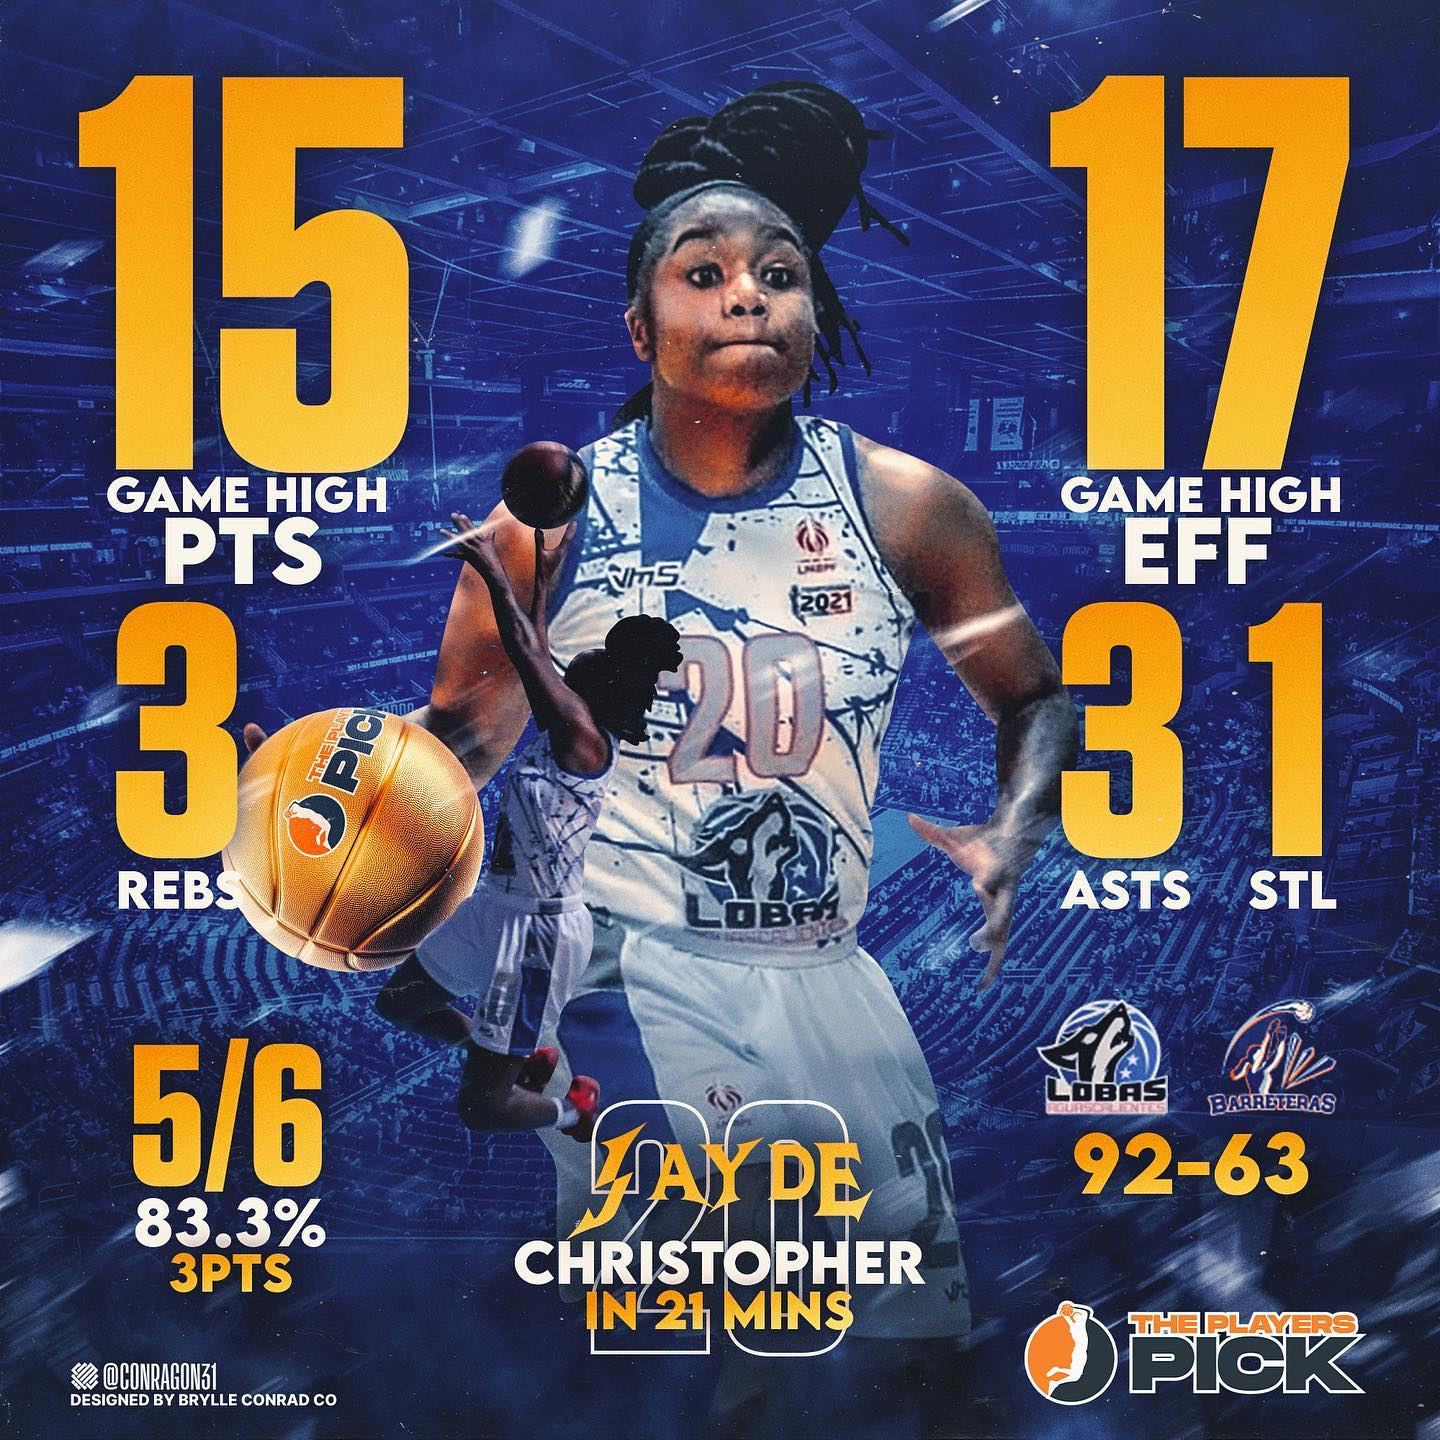 MVP Jayde Christopher went off with 5/6 3pts vs Barreteras!